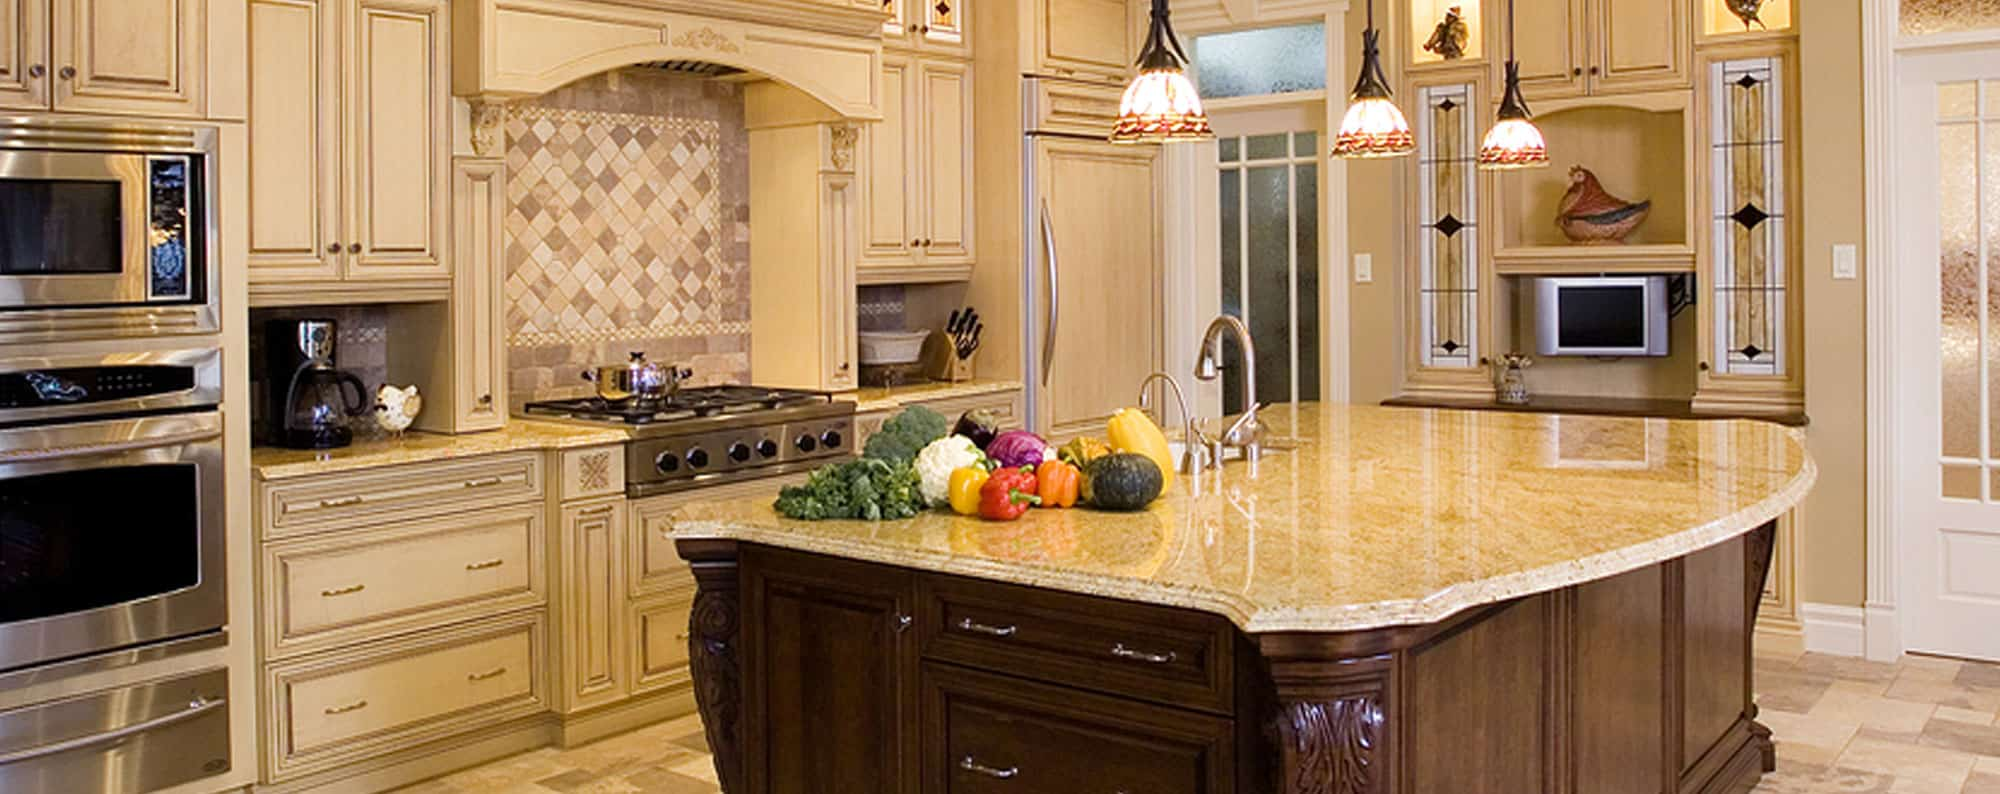 Uncategorized. Kitchen Remodeling Baltimore. jamesmcavoybr Home Design